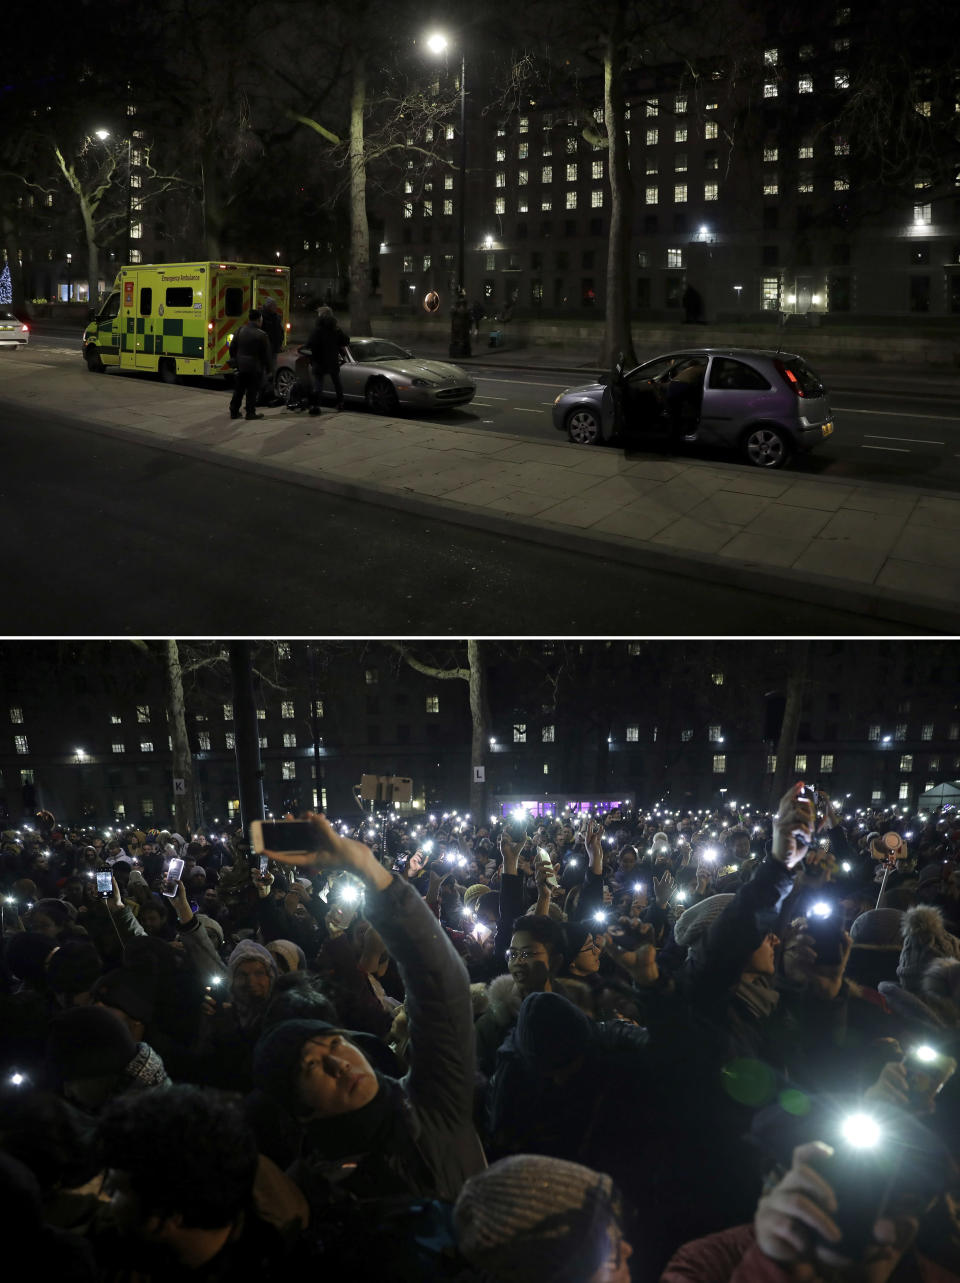 In this combo of image which shows at top, an ambulance and press photographers waiting on the otherwise empty street opposite the London Eye Ferris wheel in London, Thursday, Dec. 31, 2020, and in the bottom photo taken in the same place, people waiting to take photos of fireworks over the London Eye Ferris wheel, as midnight approaches, Tuesday, Dec. 31, 2019 .(AP Photo/Matt Dunham)